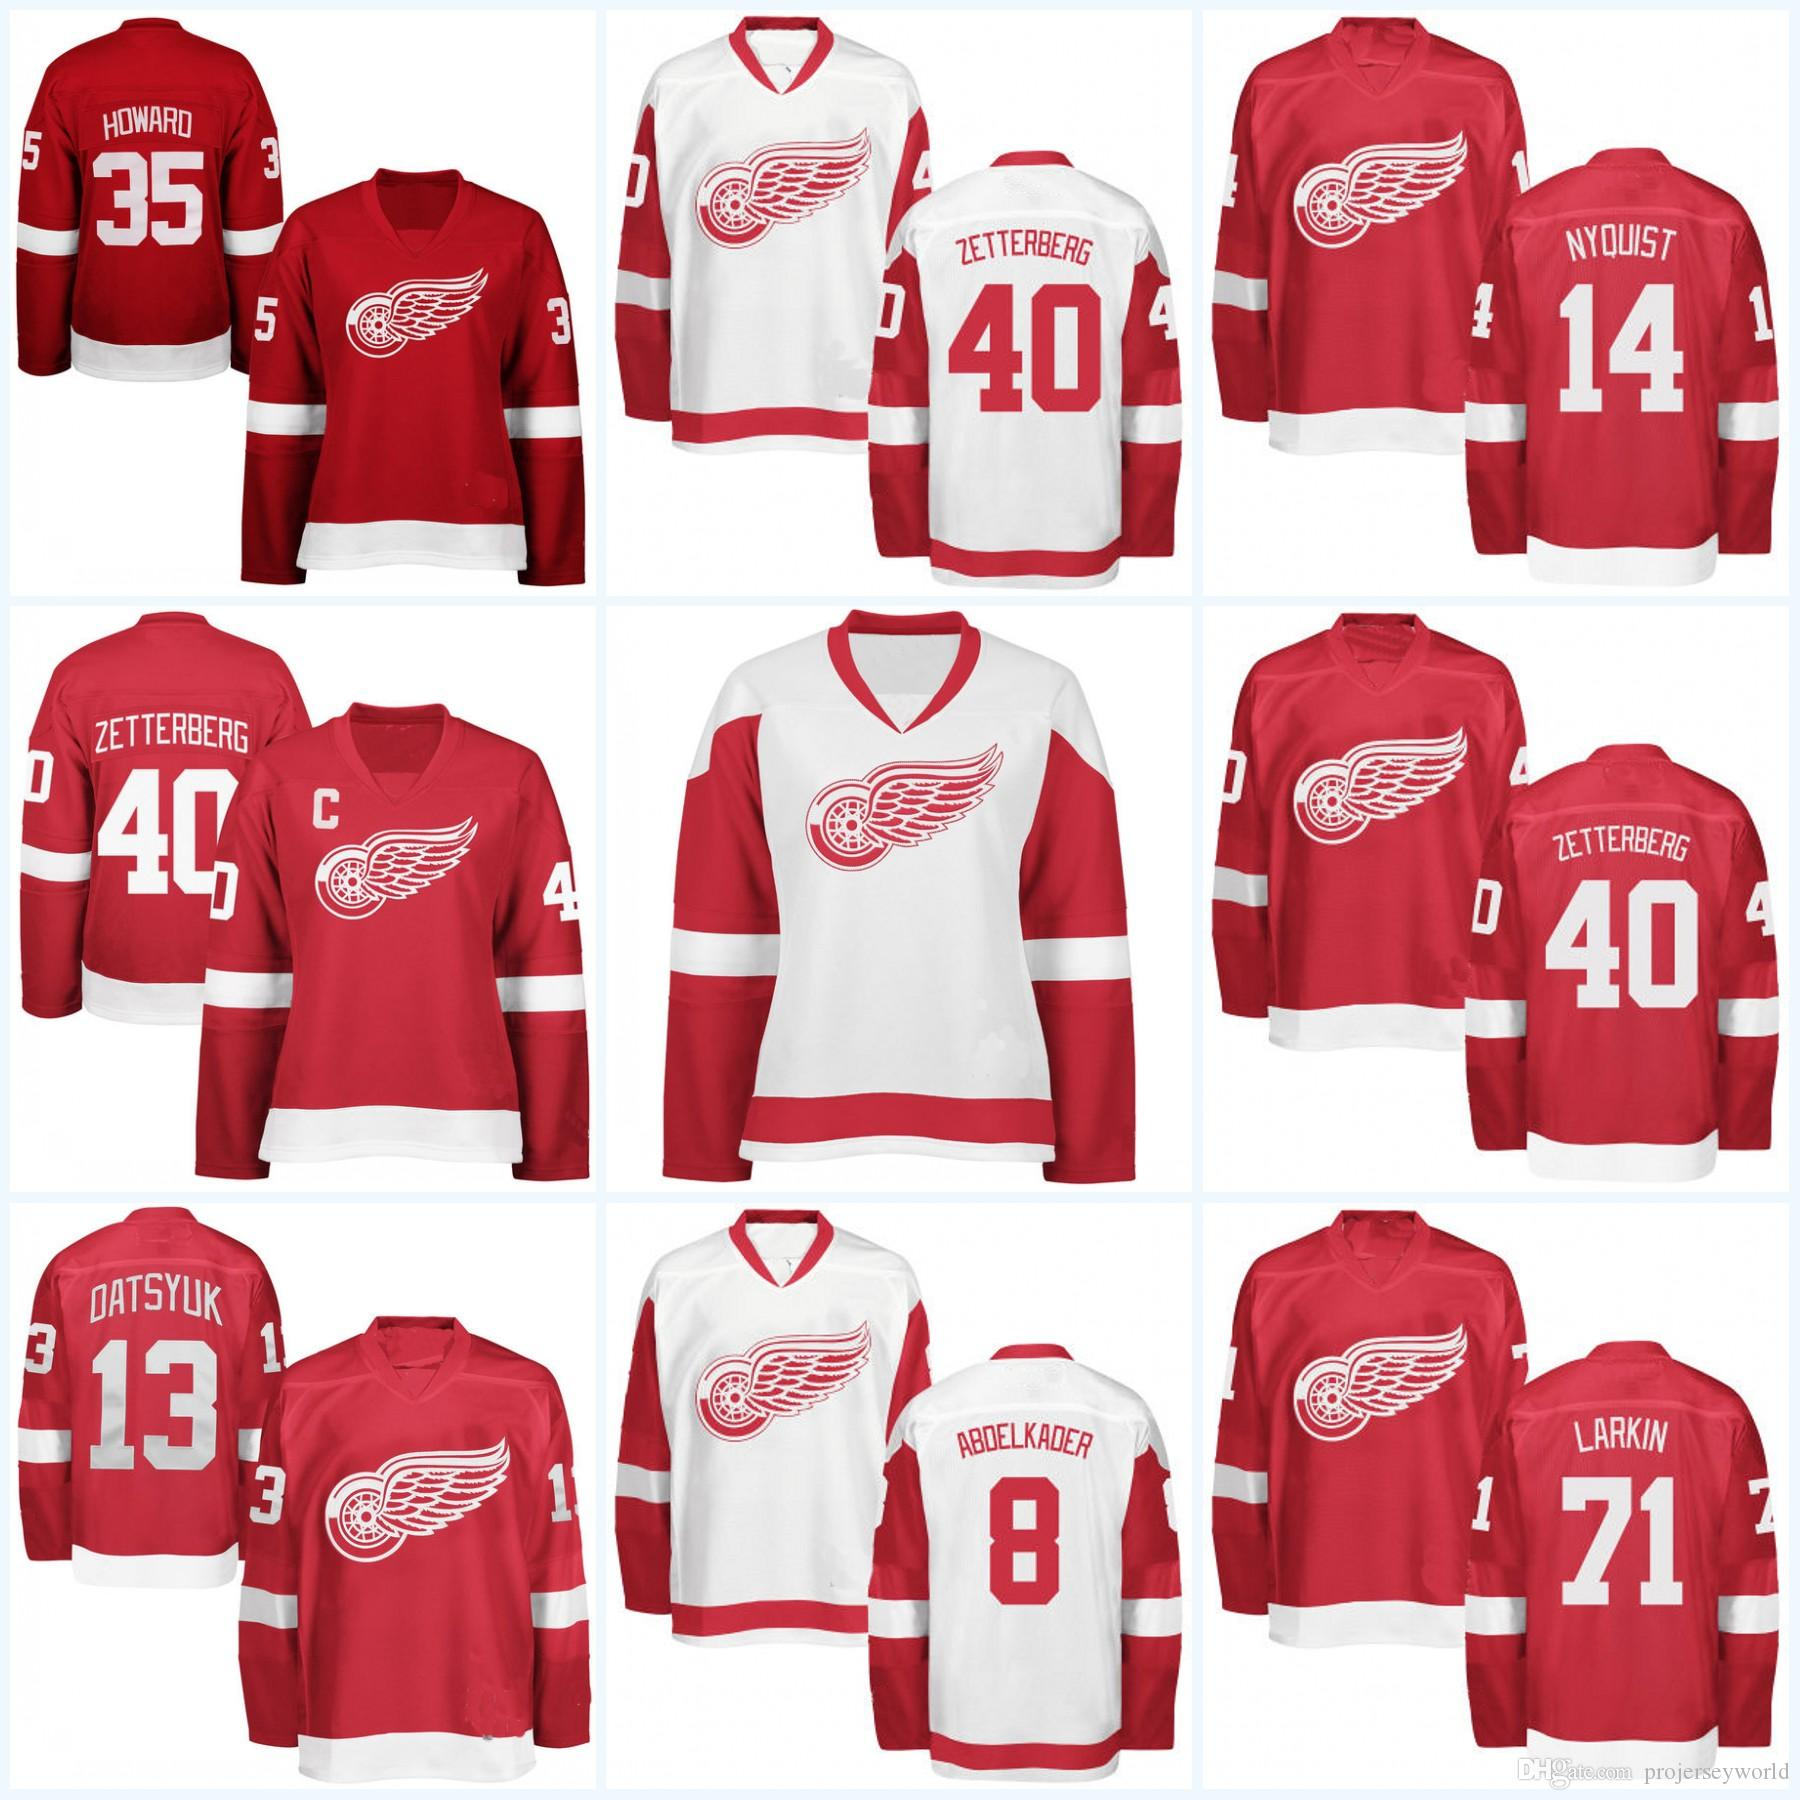 Womens Detroit Red Wings Jersey 40 Henrik Zetterberg 71 Dylan Larkin 13  Pavel Datsyuk 19 Steve Yzerman 9 Gordie Howe Hockey Jerseys Detroit Red  Wings ... 70b7a81ab